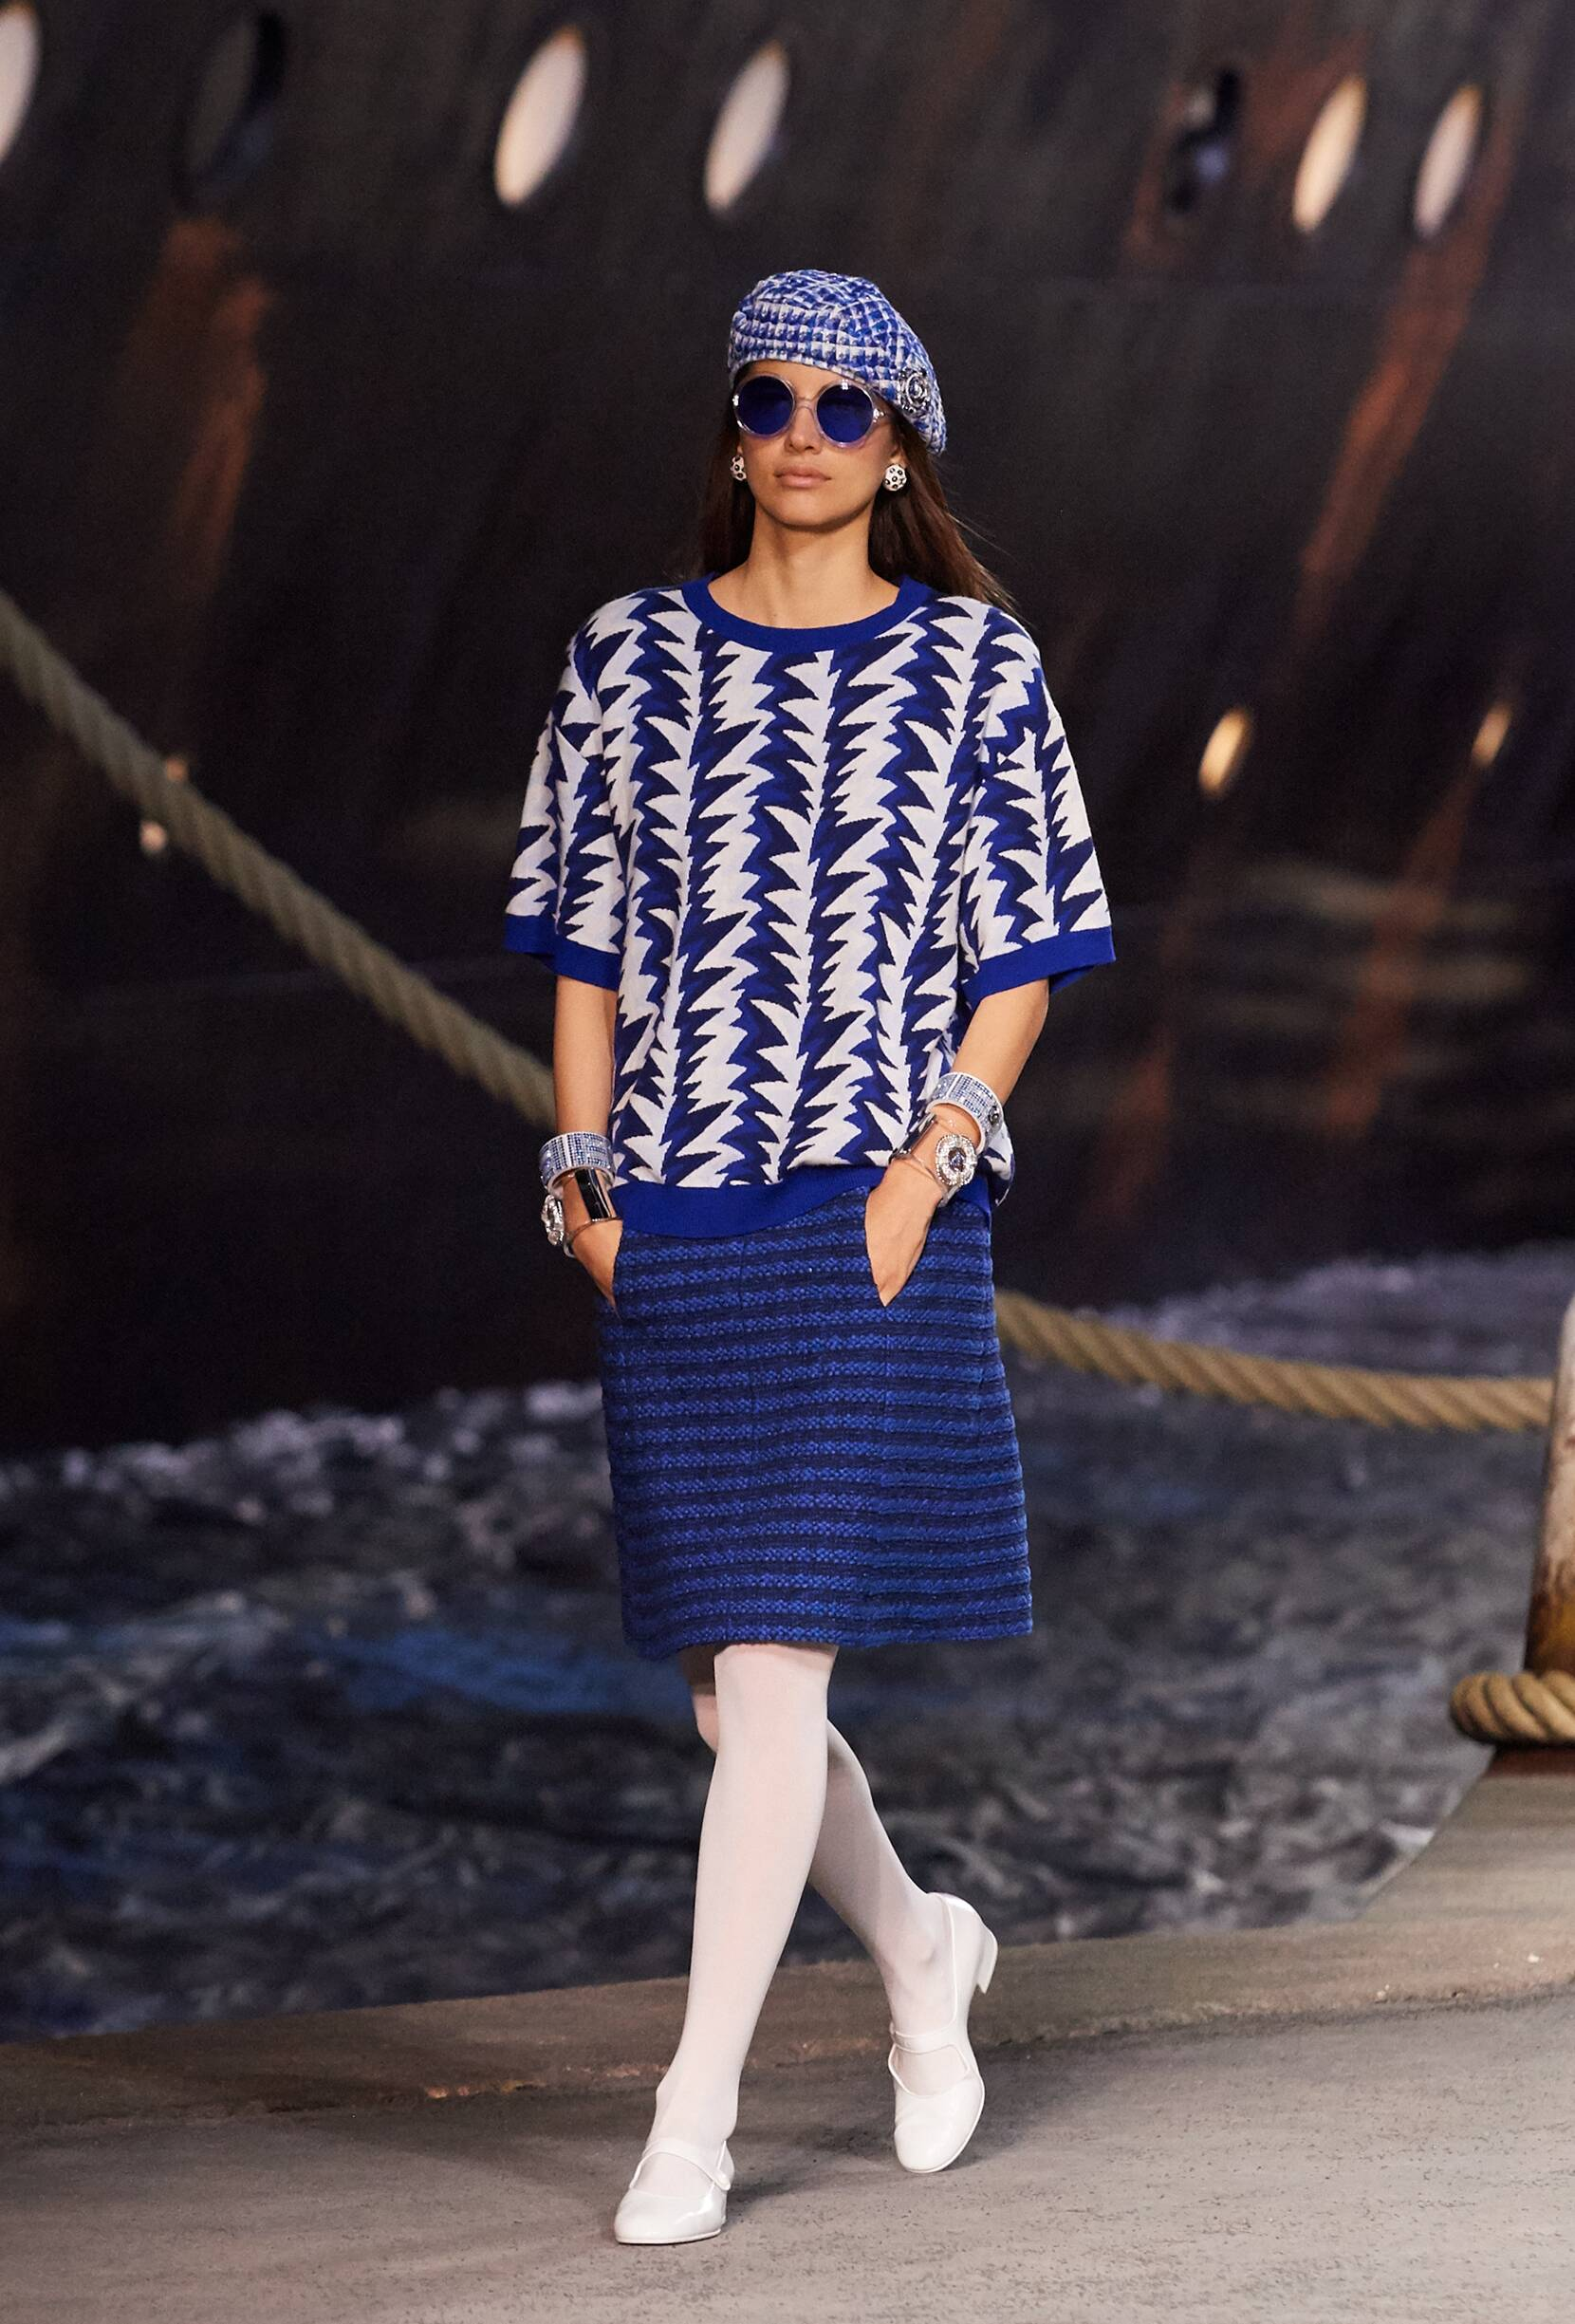 Chanel Cruise Collection 2018-19 Look 60 Paris